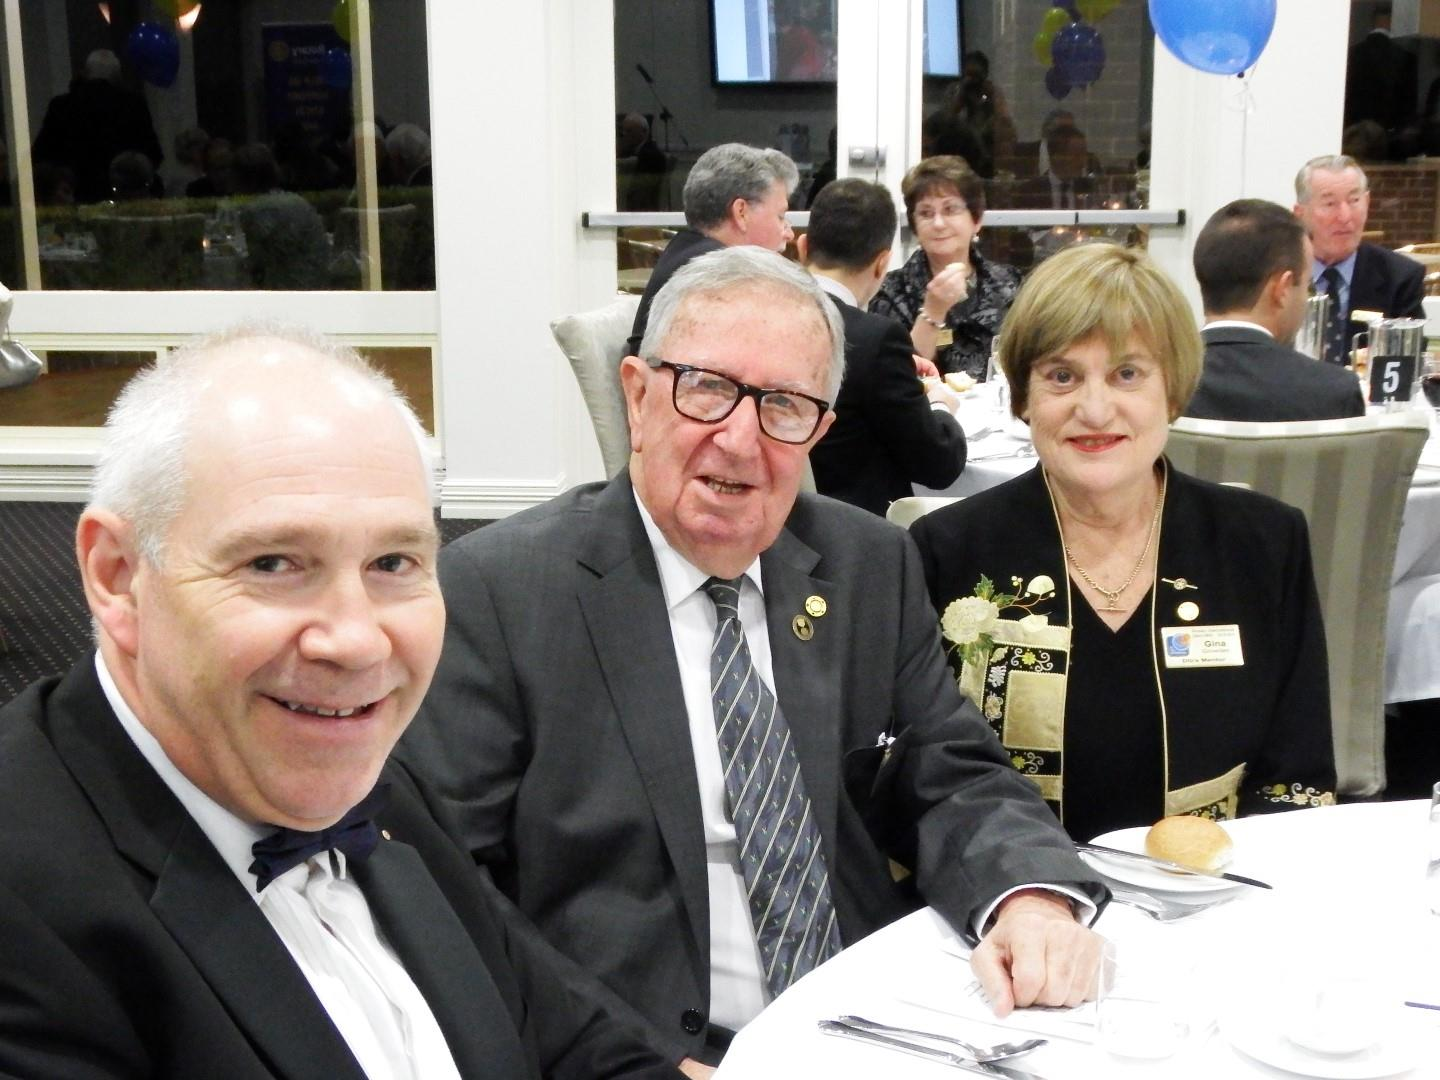 ab9e4dafb7a Official guests included PDG Gina Growden, and PDG Harold Sharp, Assistant  Governor Ward Pollard from Mosman Rotary and Joycelyn.